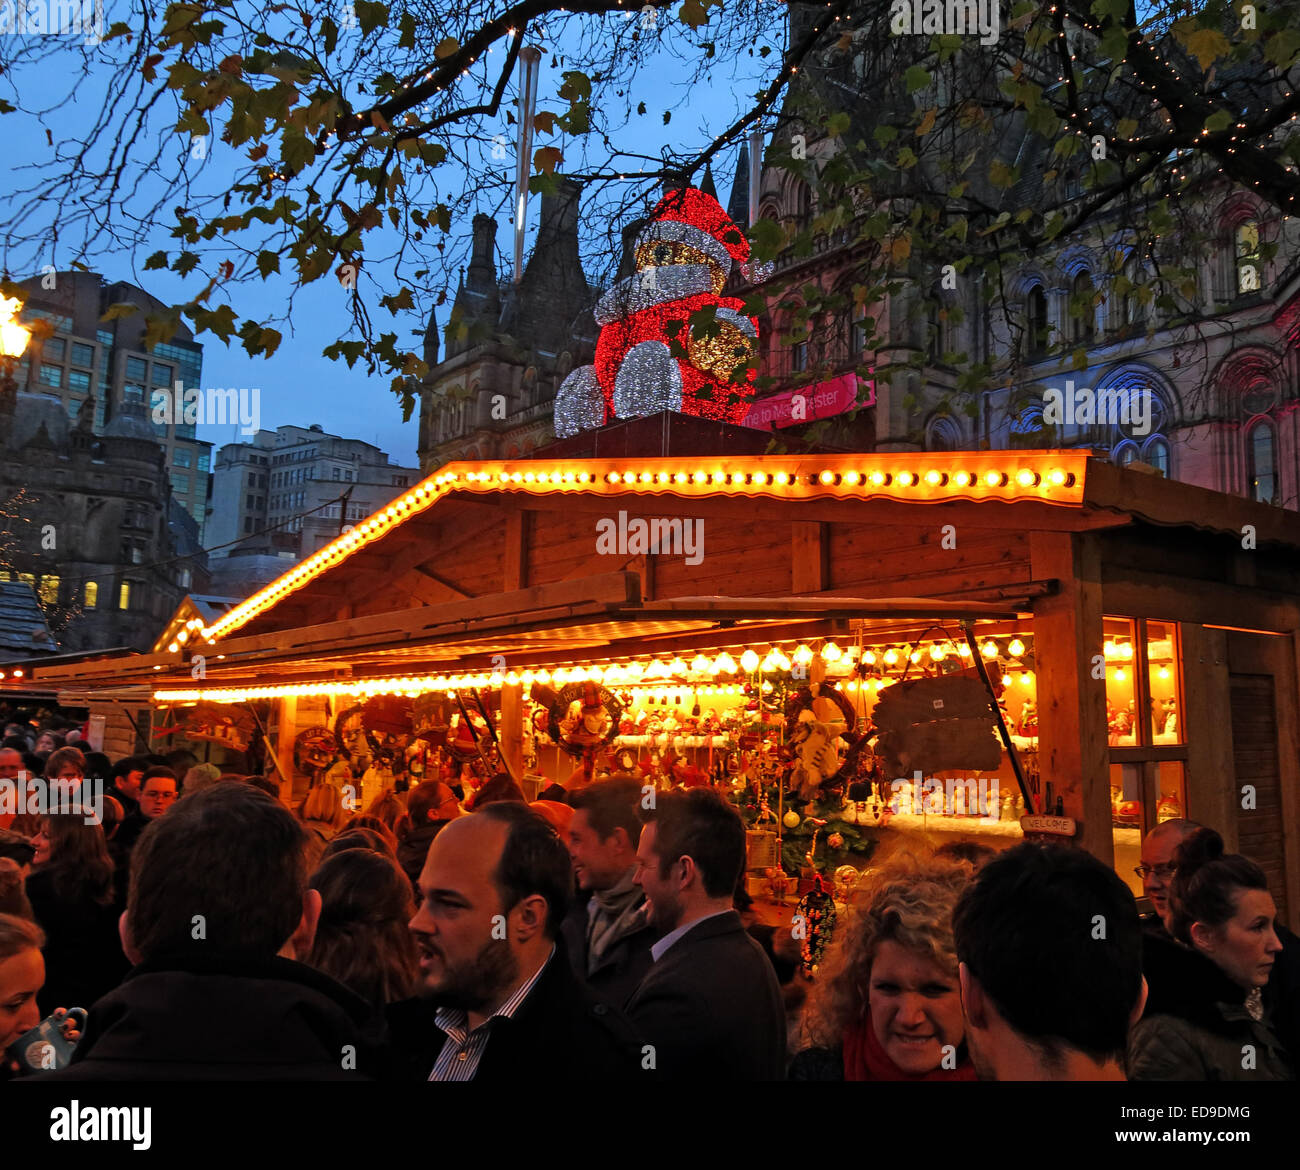 Manchester city Xmas German markets Nov/Dec, England, UK at dusk, Santa on Town Hall - Stock Image